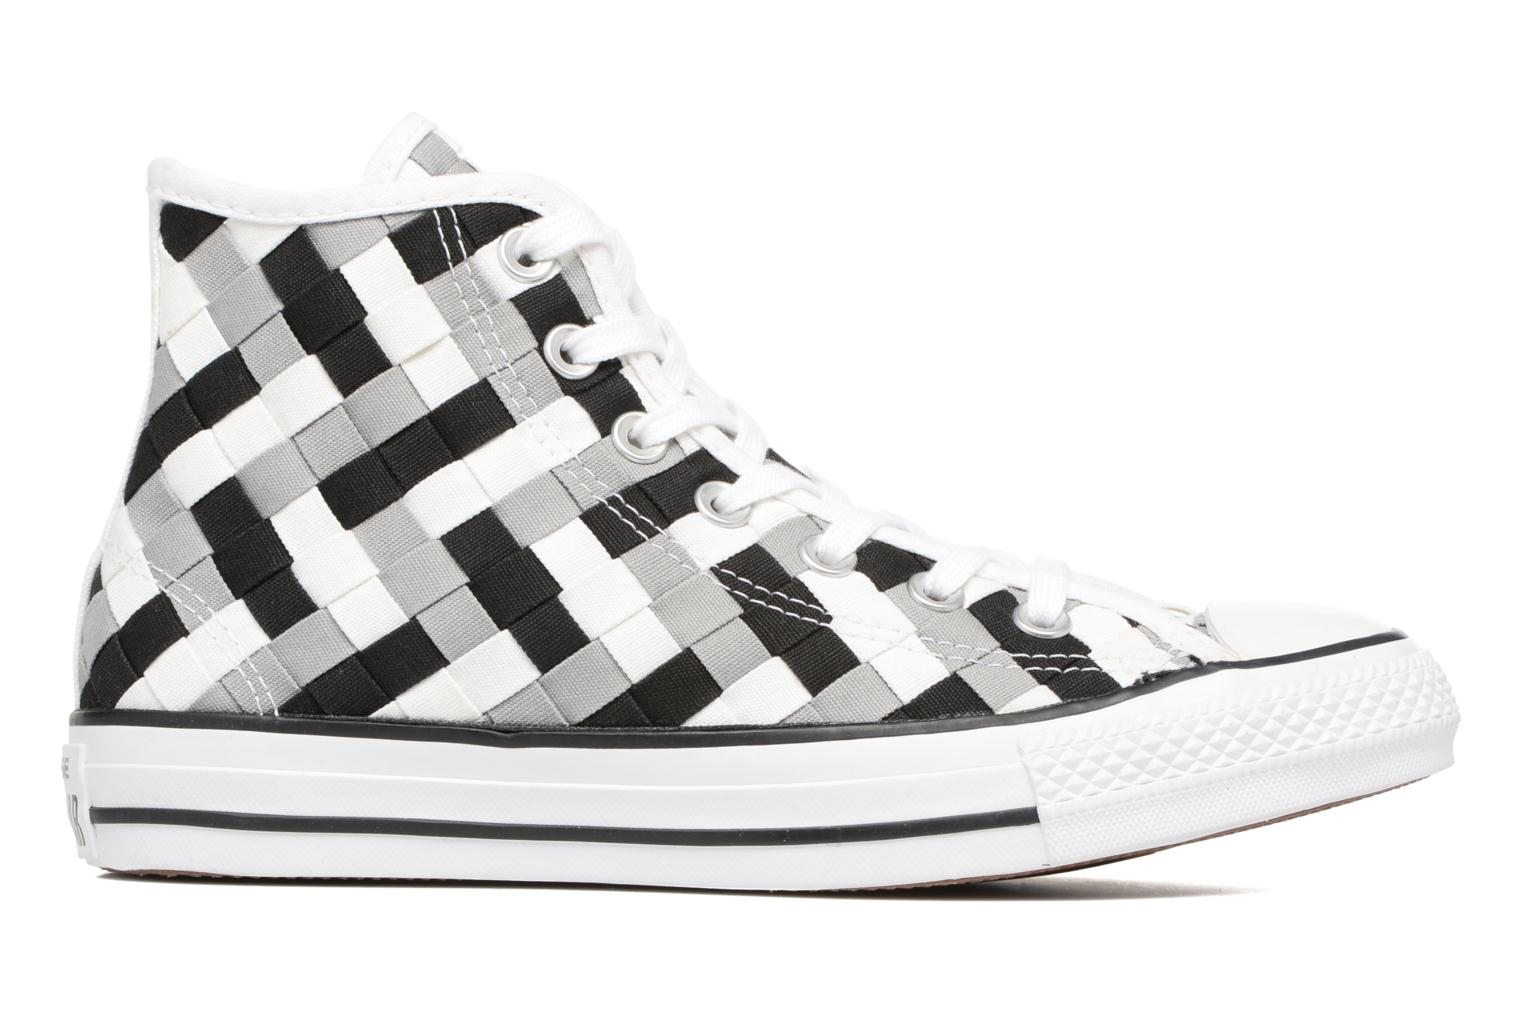 Chuck Taylor All Star Coton Hi Woven Canvas W Dolphin/Black/White